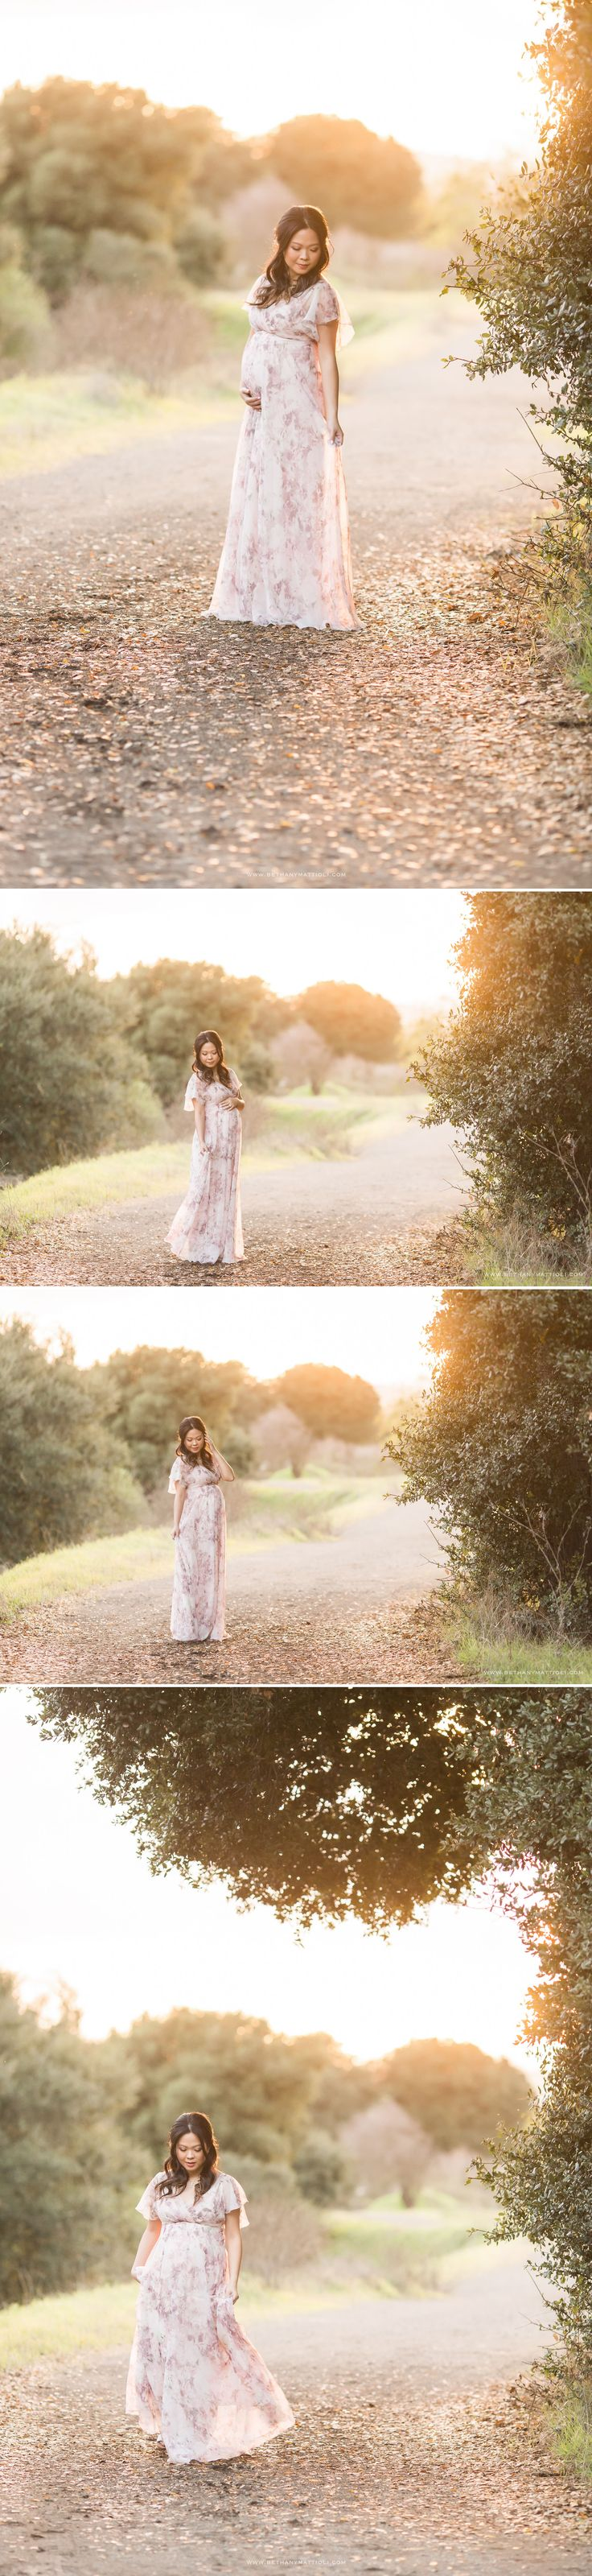 Romantic and Timeless Outdoor Maternity Session | Bay Area Maternity and Newborn Photography | Bethany Mattioli Photography